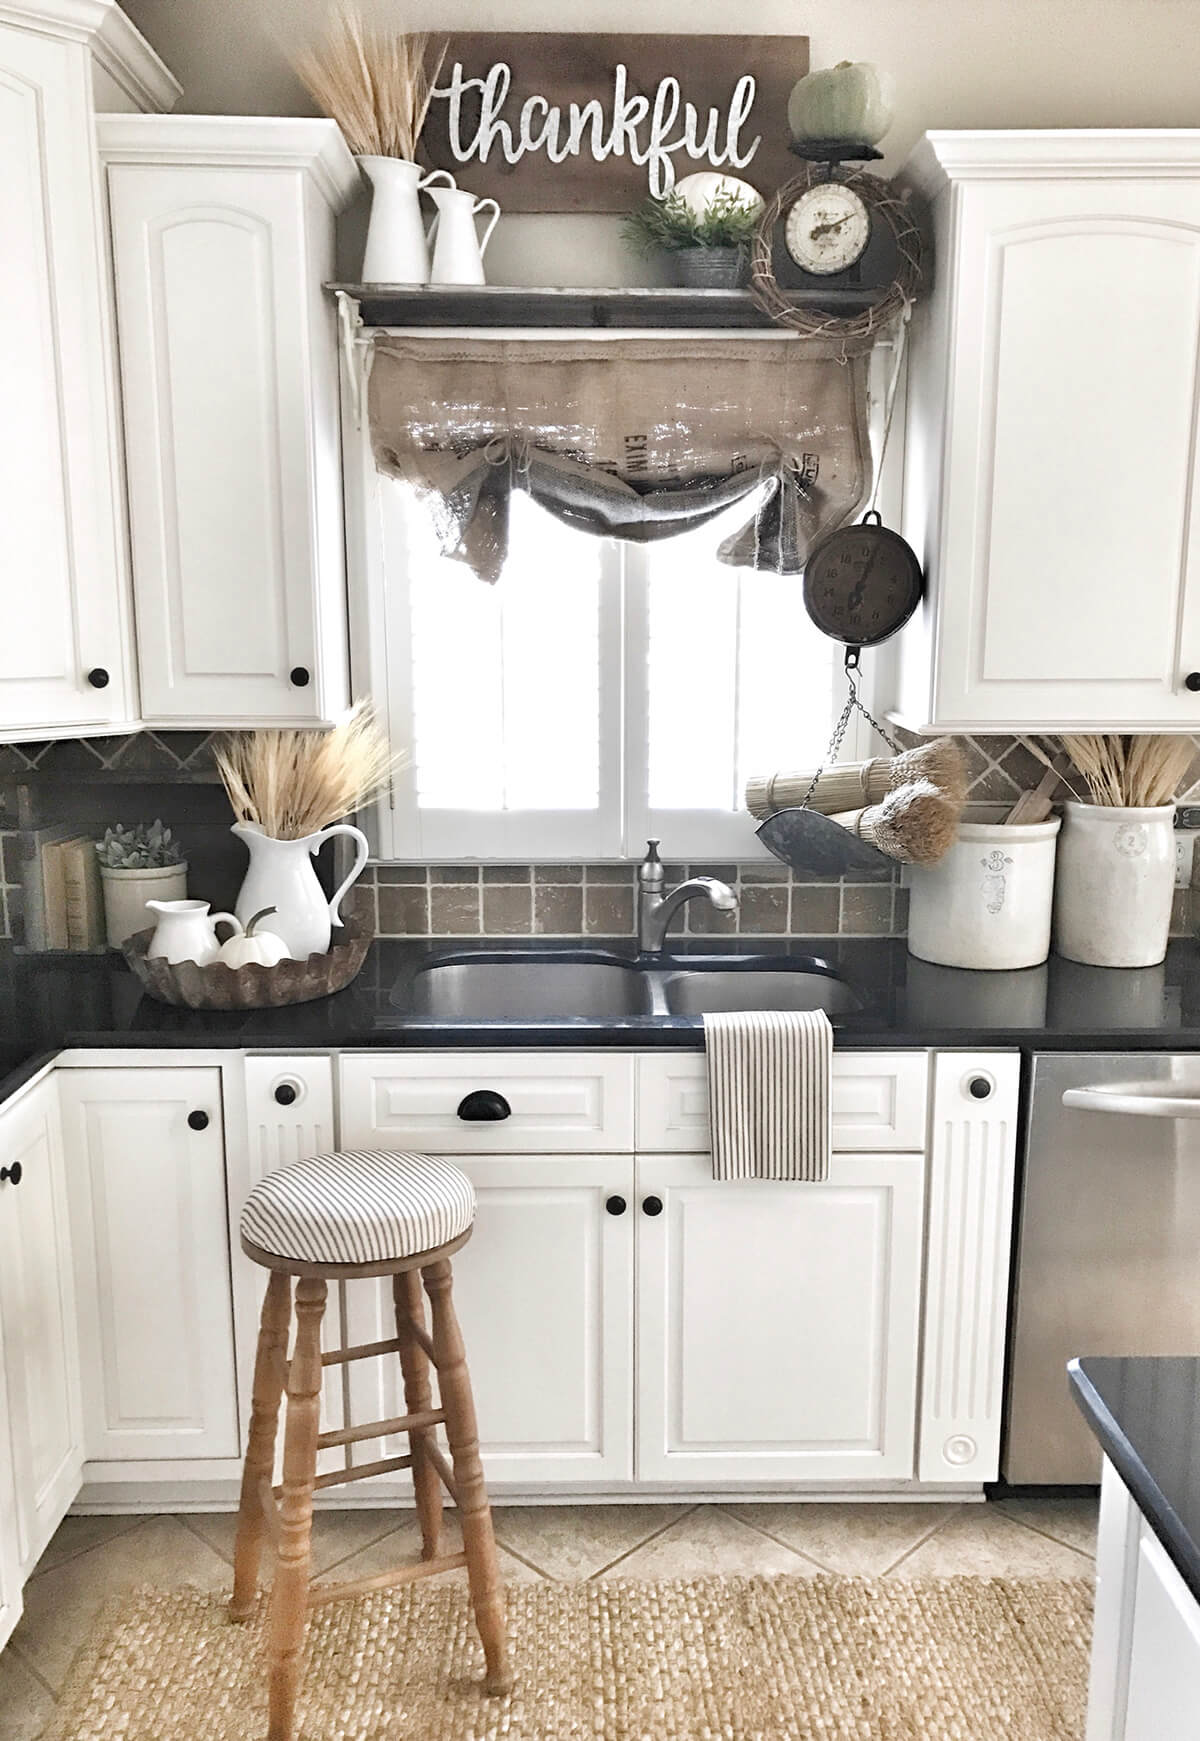 white kitchen cabinets ideas kohler forte faucet 35 best farmhouse cabinet and designs for 2019 high contrast with black accents